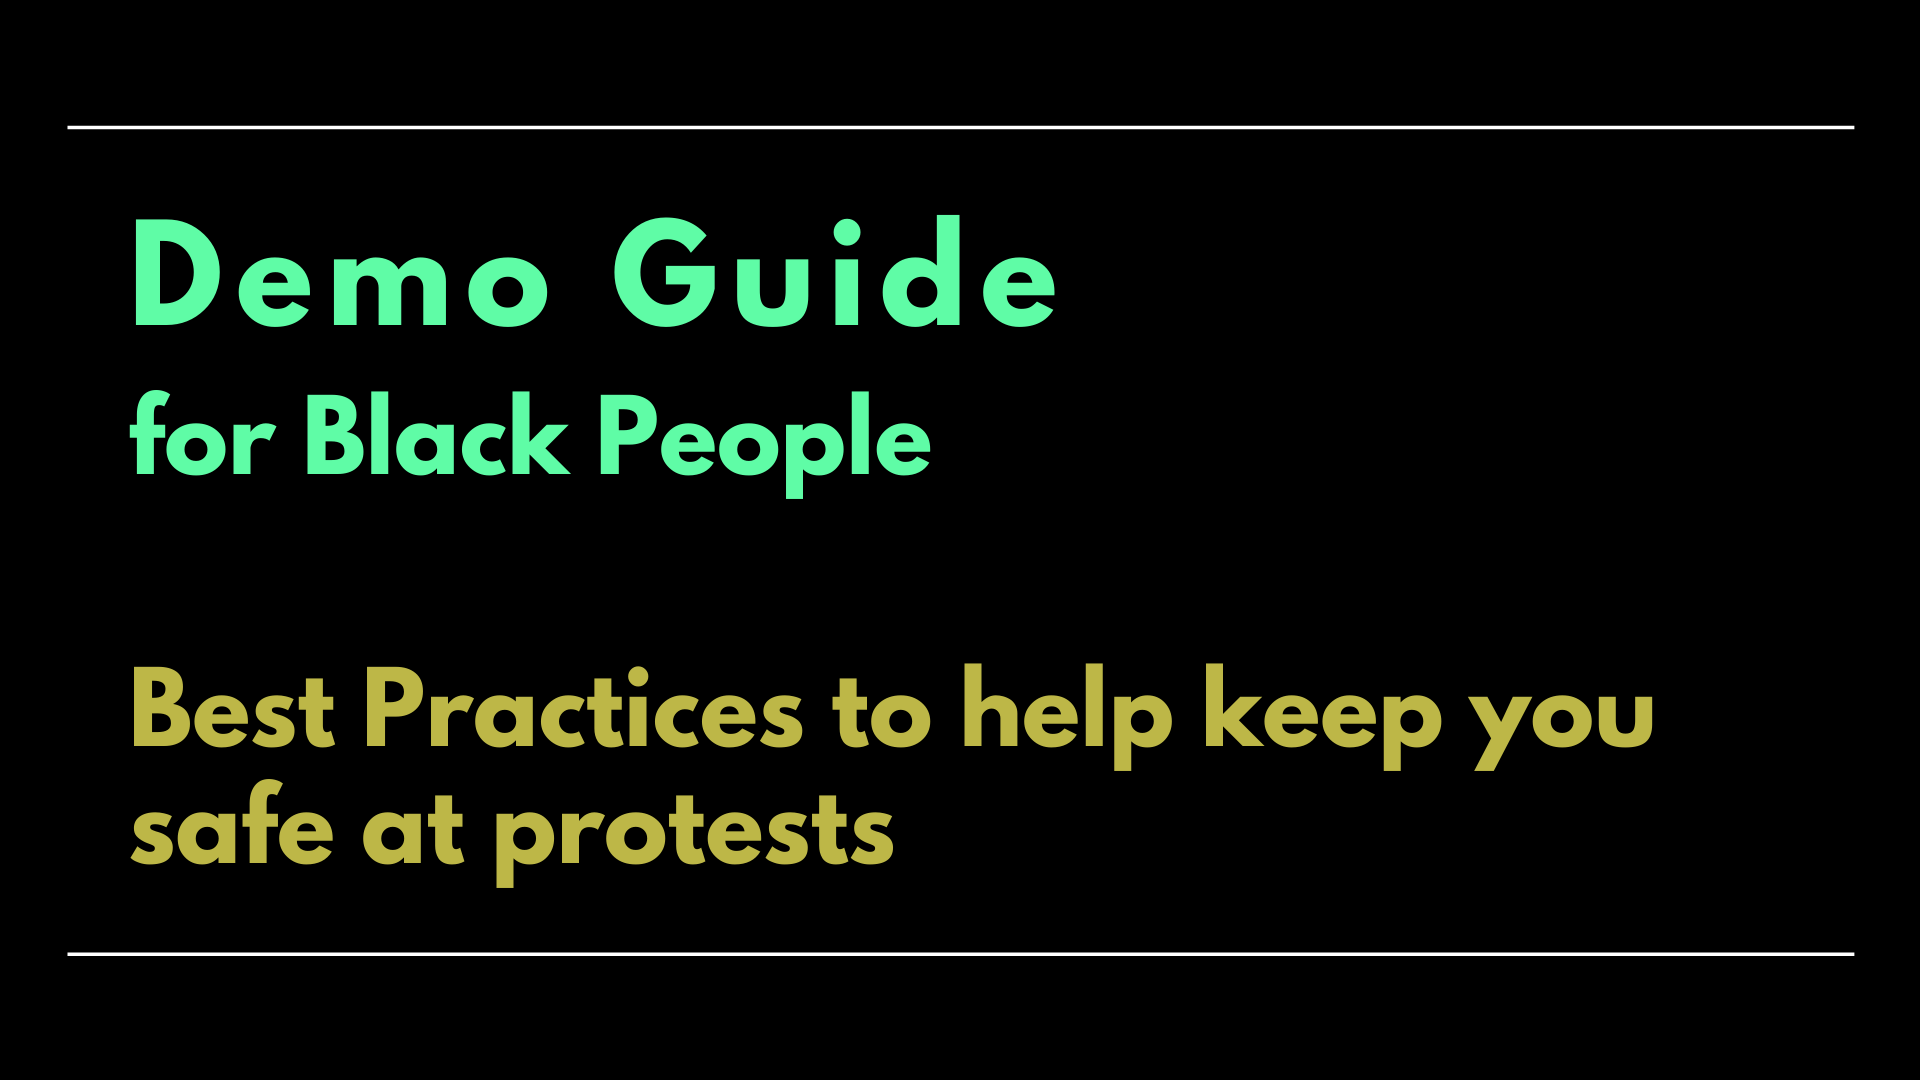 Text Graphic: Demo Guide for Black People - Best Practices to help keep you safe at protests